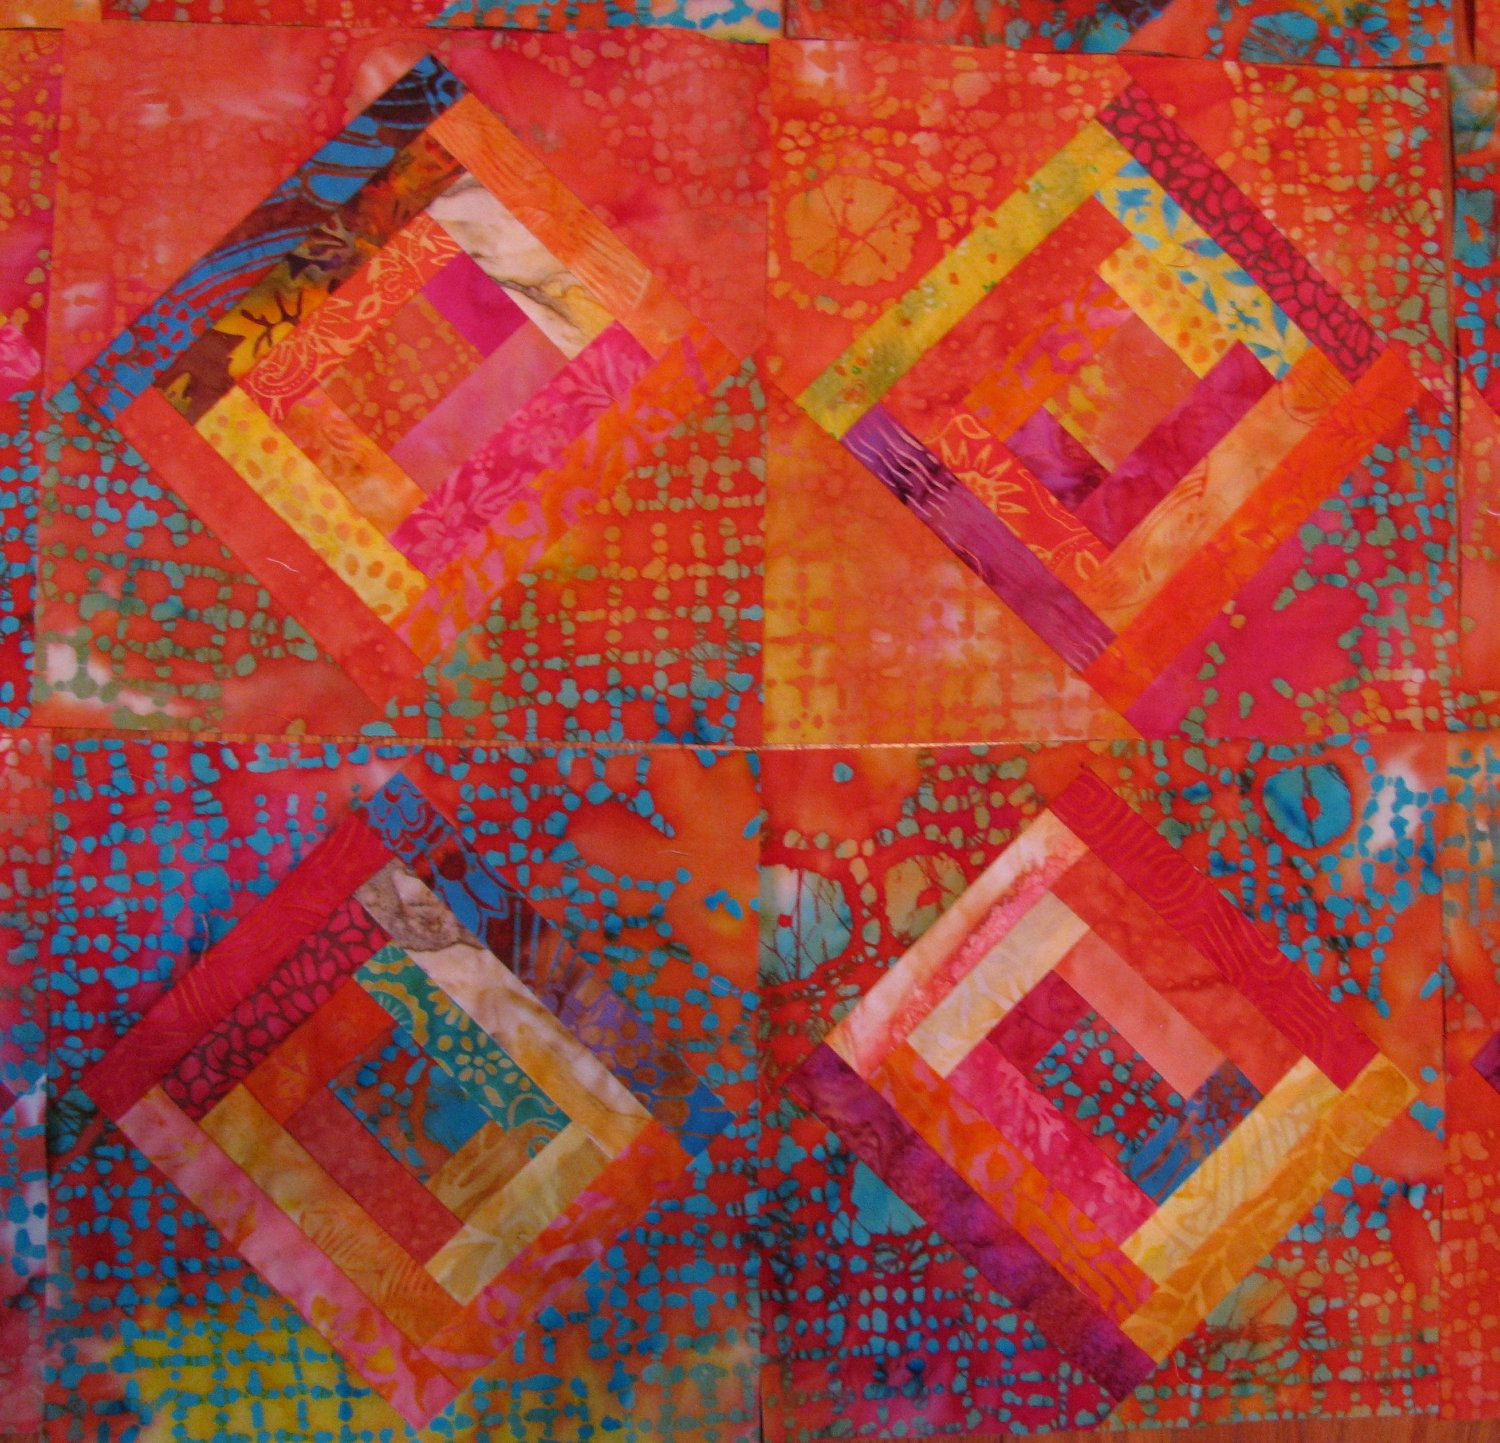 tropical delight log cabin quilt blocks just looking at the colors